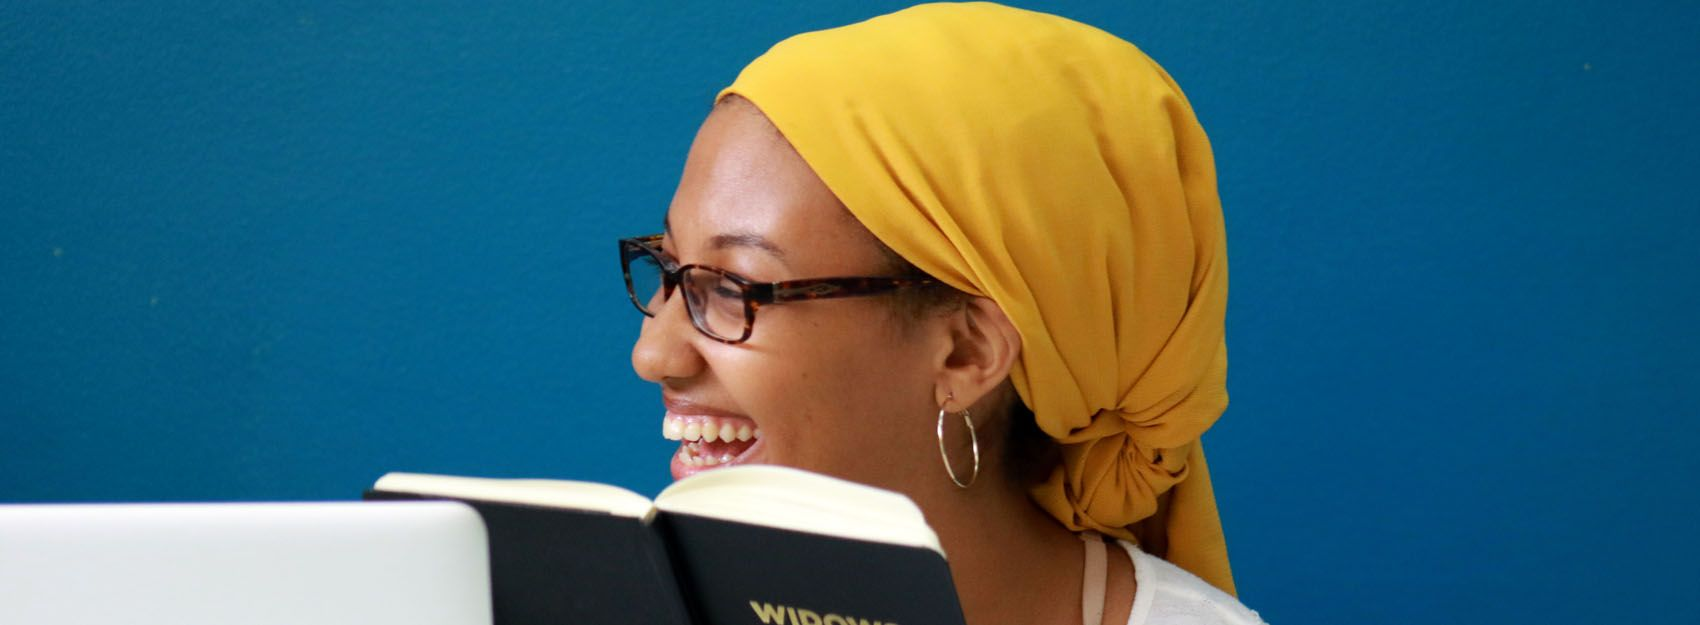 student with yellow head scarf and glasses smiling and holding book